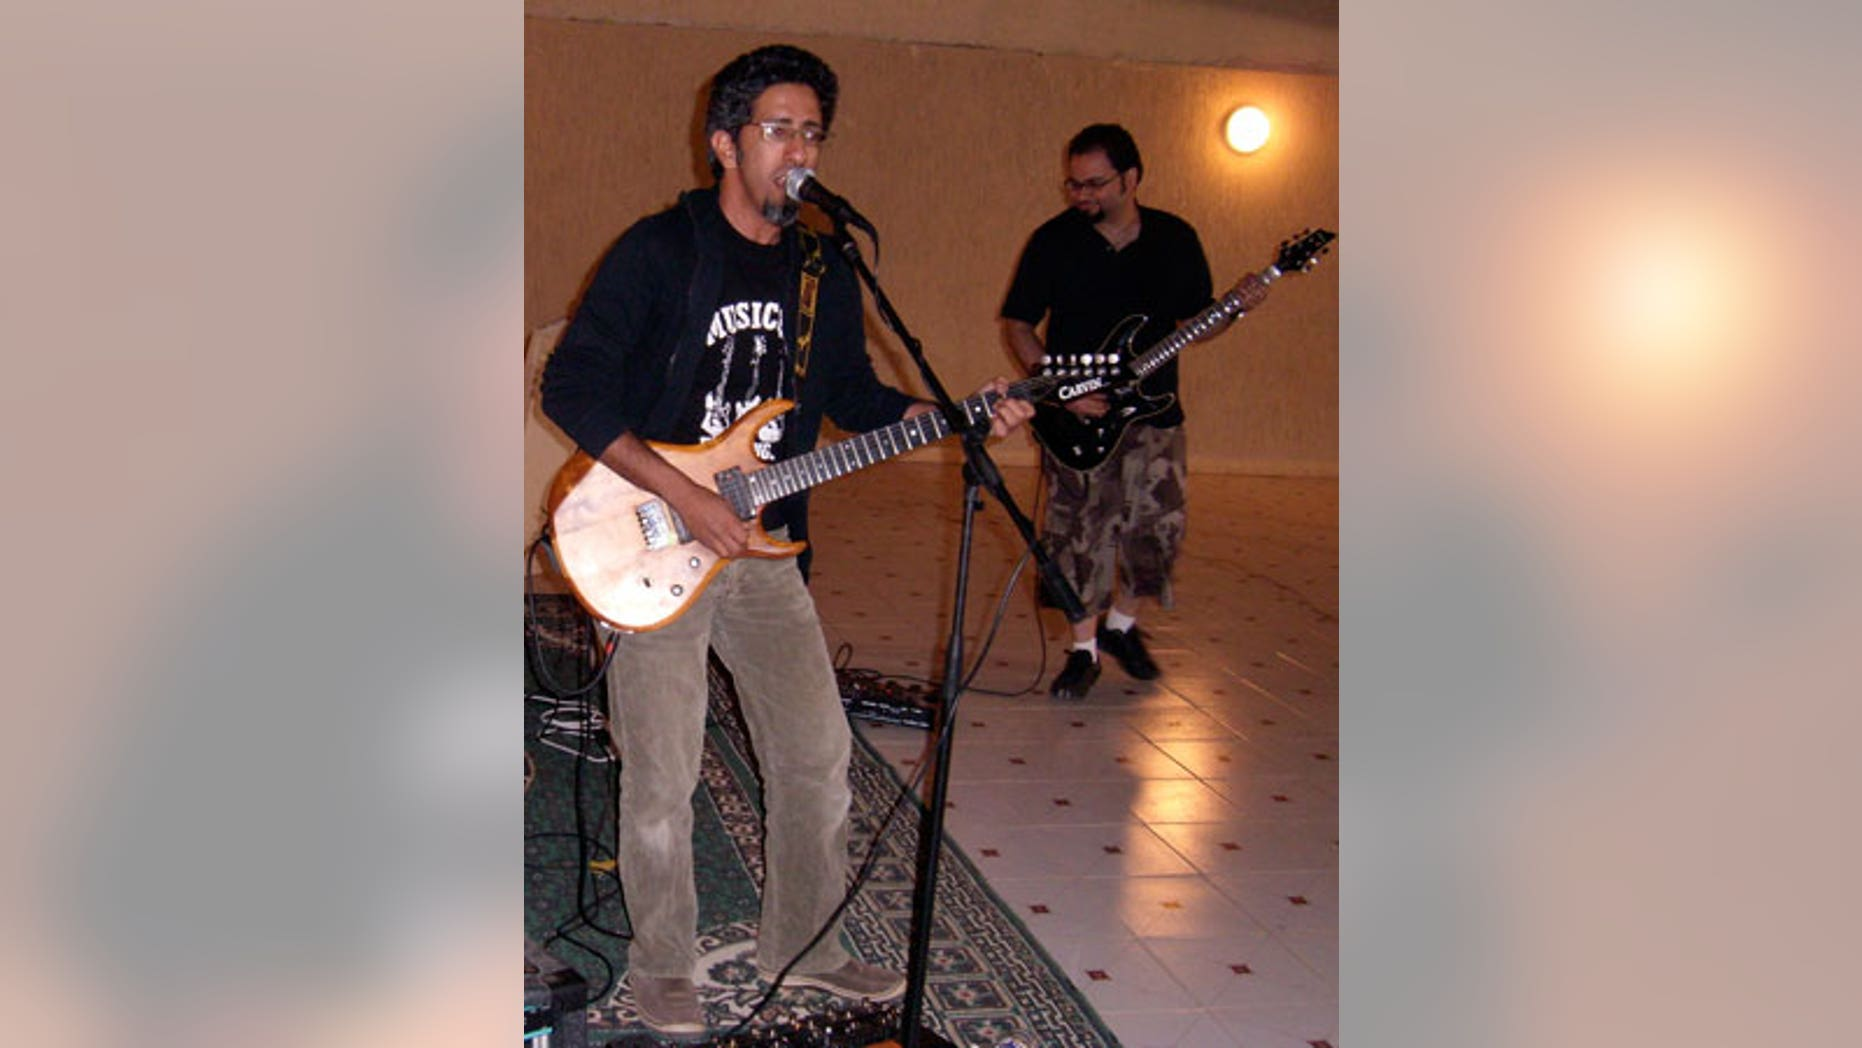 Saudi rock musician and journalist Hasan Hatrash, left, must contend with the unwelcome attention of Saudi Arabia's religious police, which frowns on Western-style music and dress.